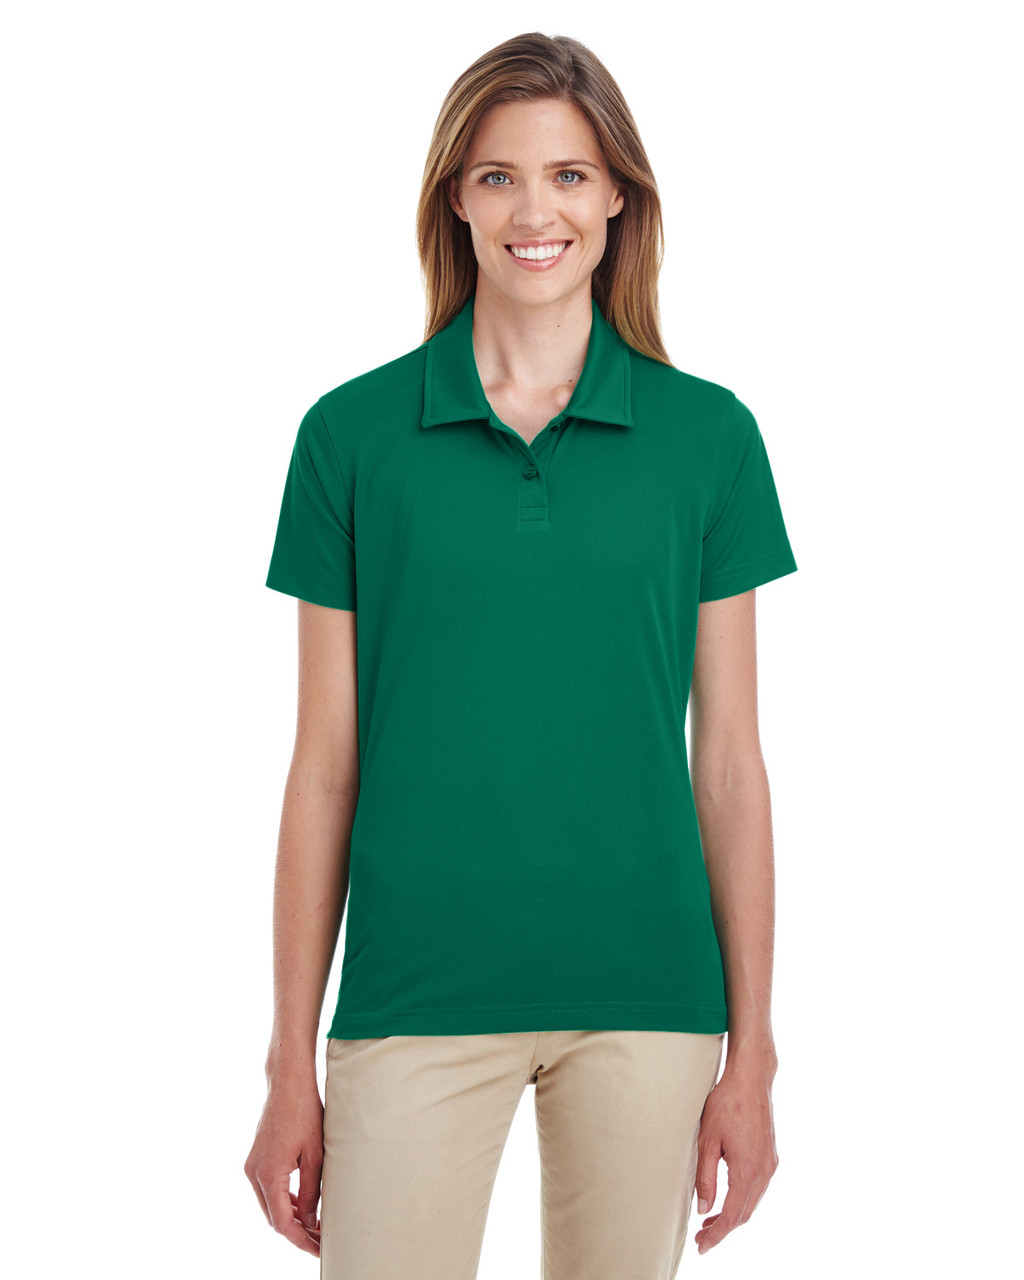 Sport Forest - TT21W Team 365 Ladies' Command Snag Protection Polo Shirt